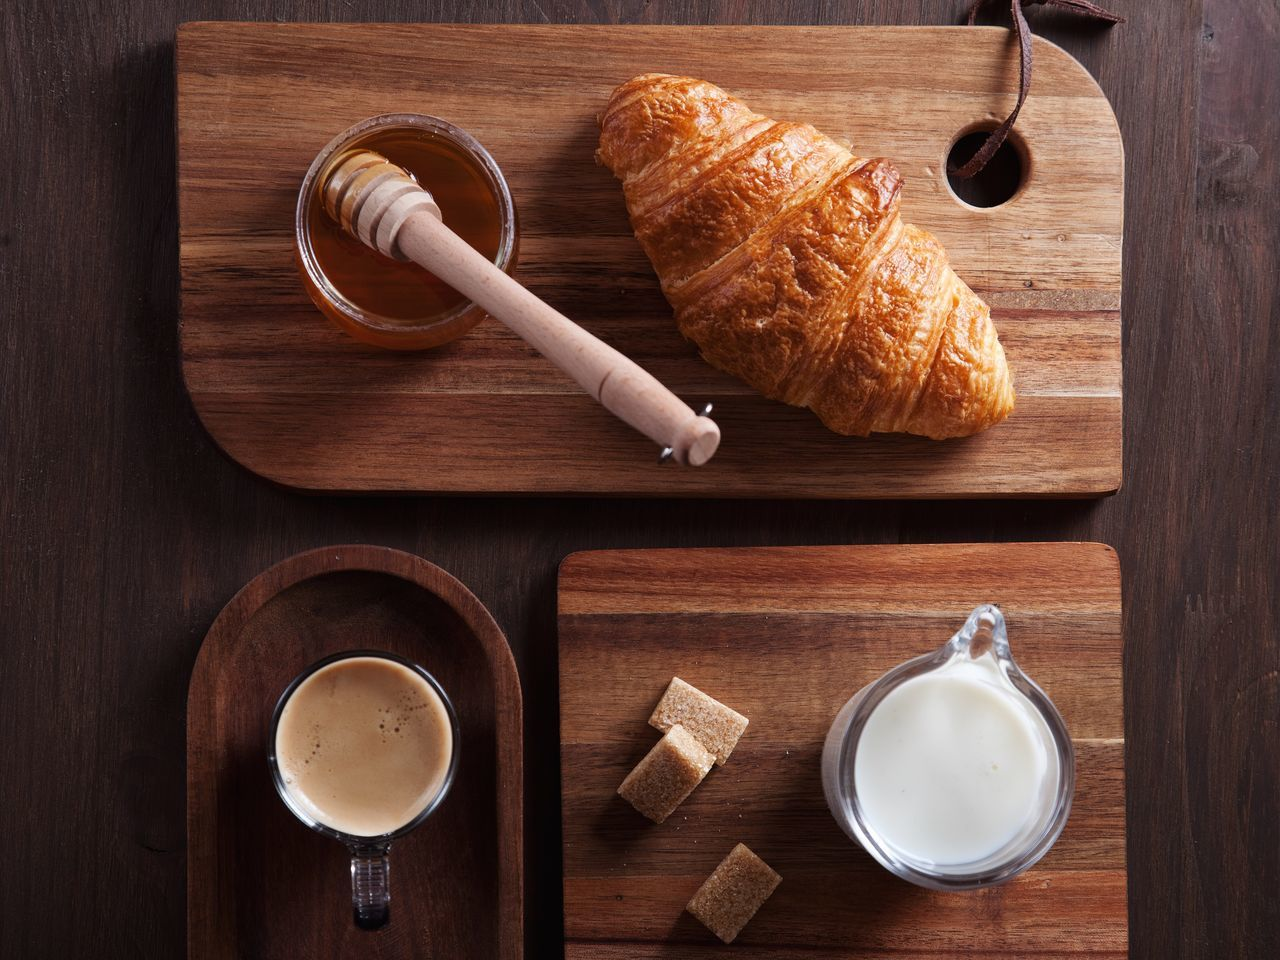 Coffee - Drink Croissant Wood - Material Coffee Cup Food And Drink Table Directly Above Food High Angle View French Food Indoors  No People Breakfast Drink Frothy Drink Day Freshness Close-up